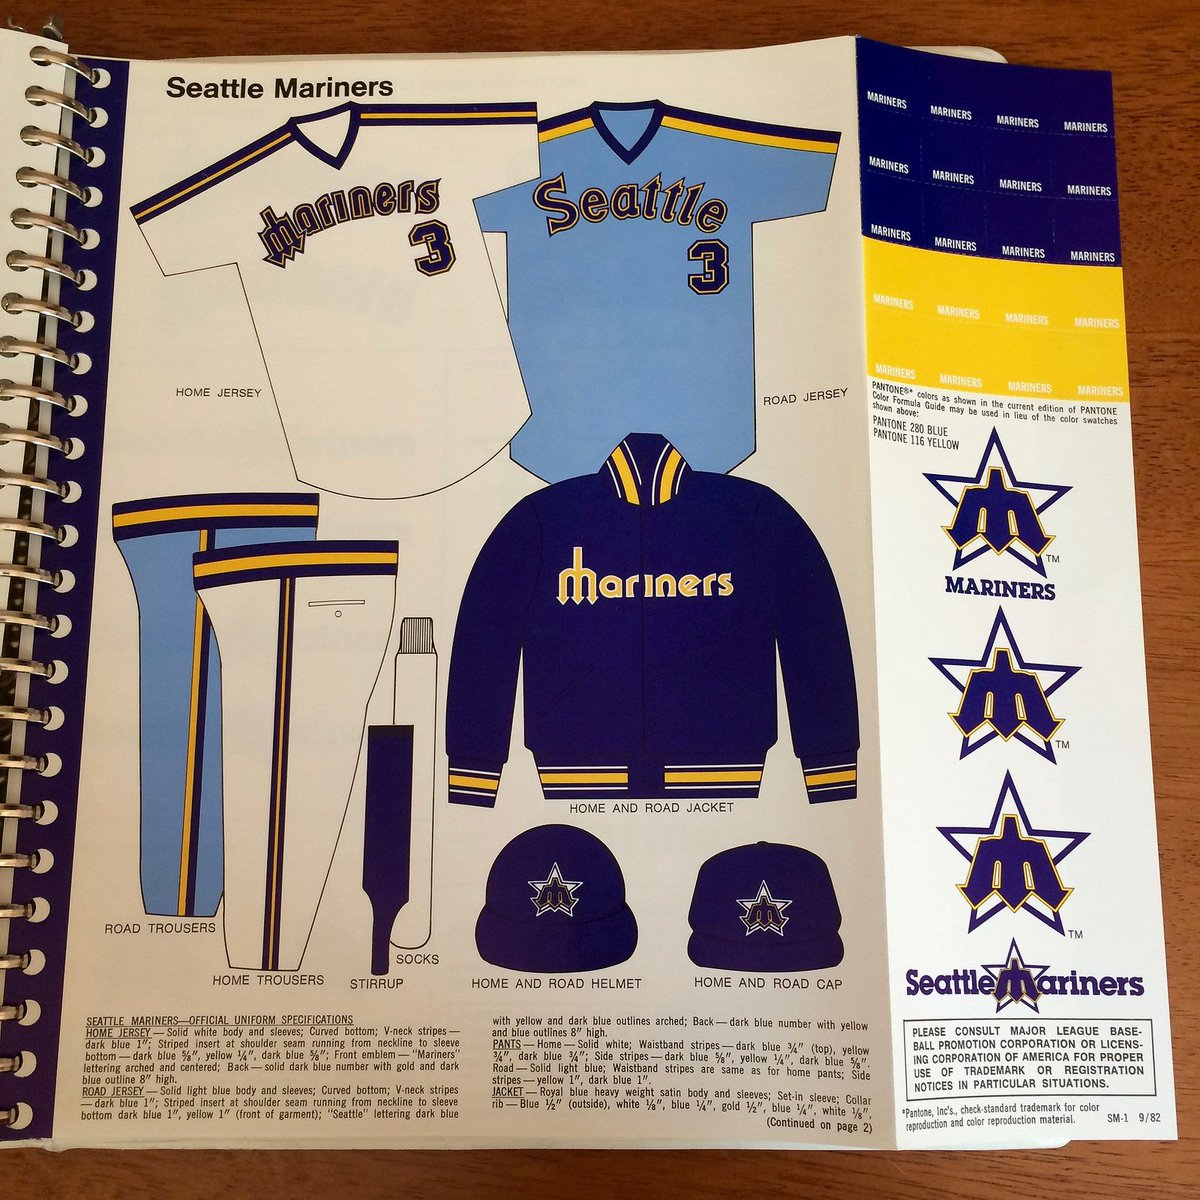 24a2fba895adca #flashbackfriday Style guide for the 1983 Seattle #Mariners uniforms. The  people want them to bring back those home uniforms so badly.